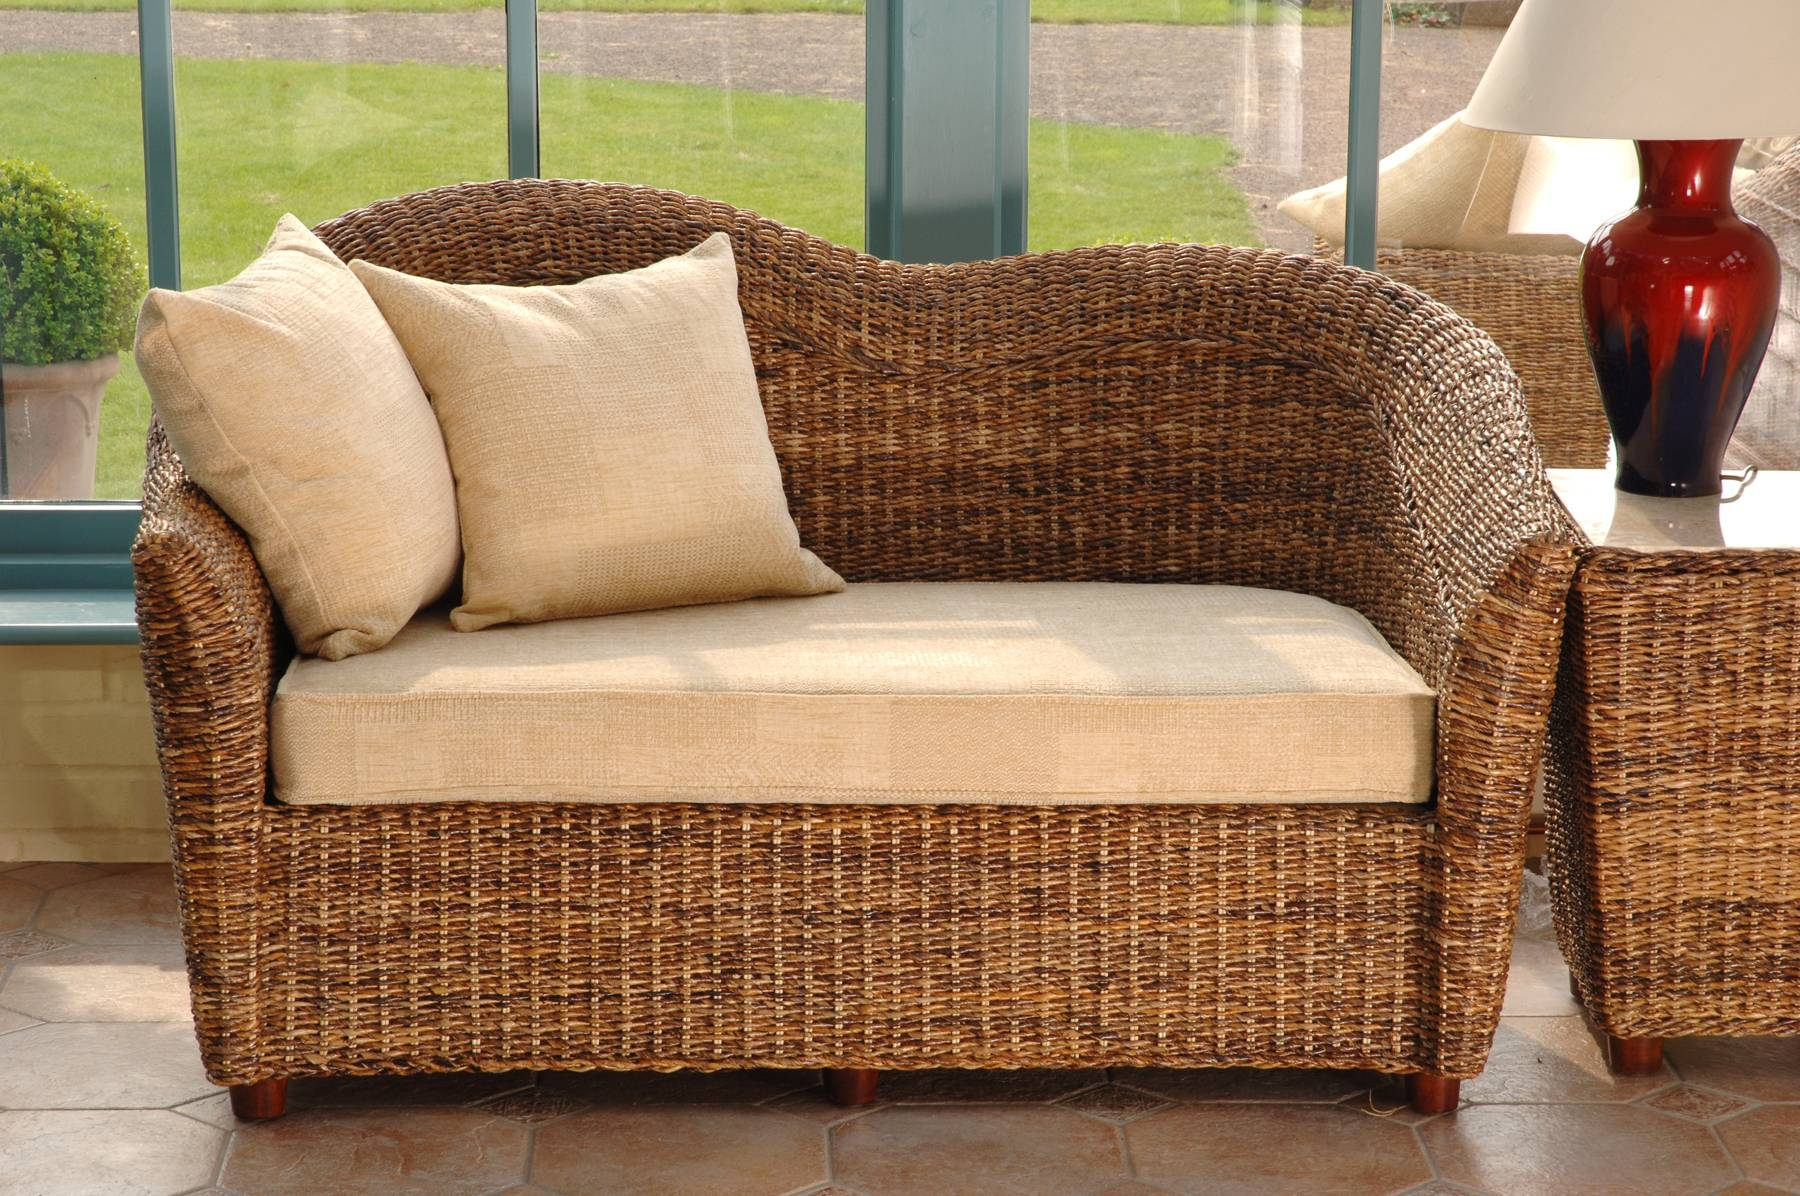 Cane Furniture: Value For Money Deal Always – Goodworksfurniture inside Bamboo Sofas (Image 8 of 15)